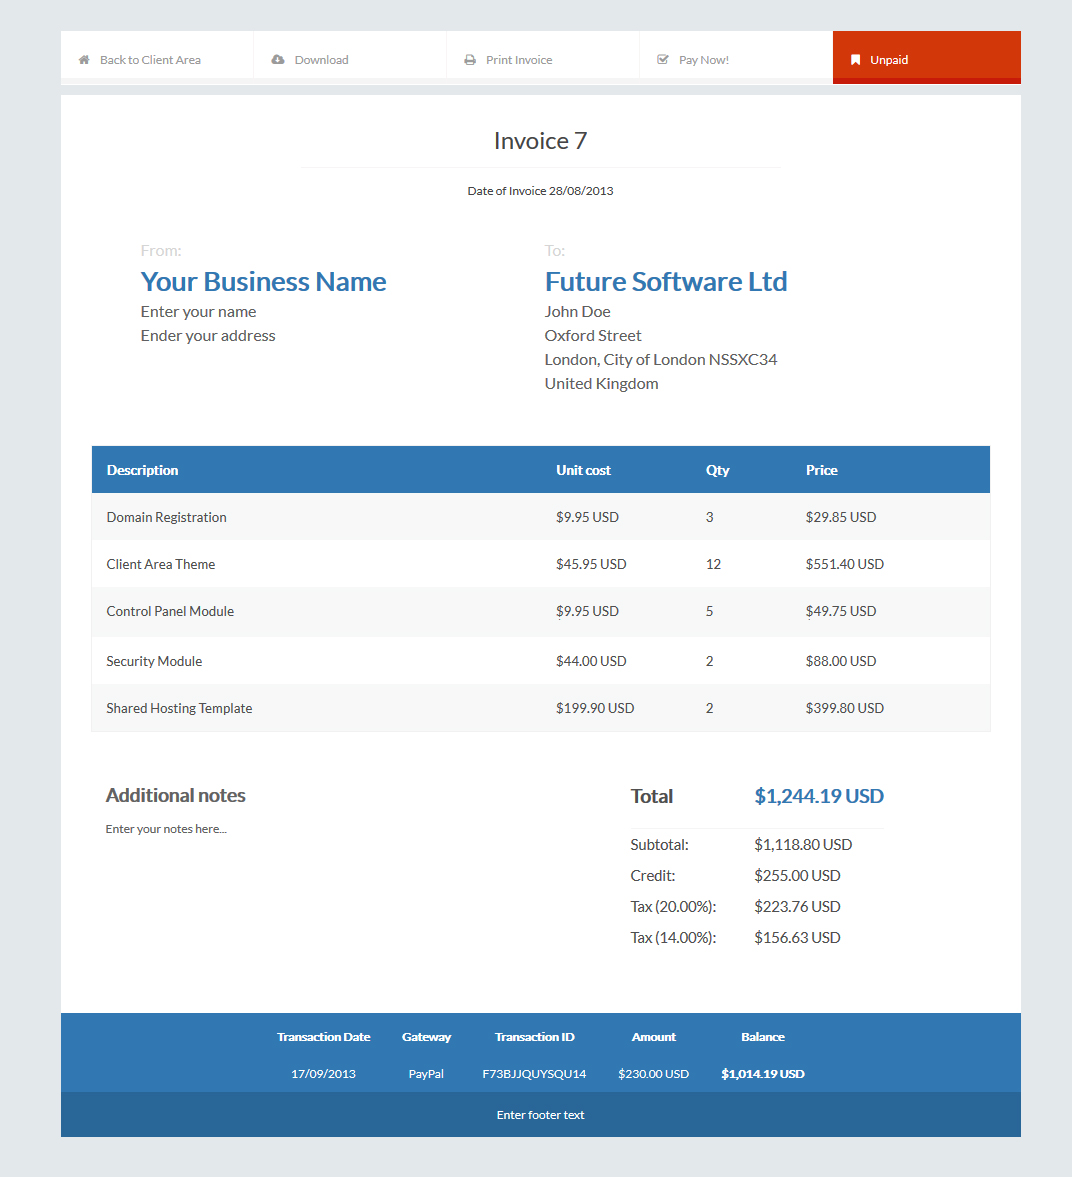 Best Invoicing Software For Small Business Excel Professional Invoice Template  Invoice Example Receipt For Egg Salad with Architect Invoice Excel Professional Invoice Template How To Prepare An Invoice For Payment